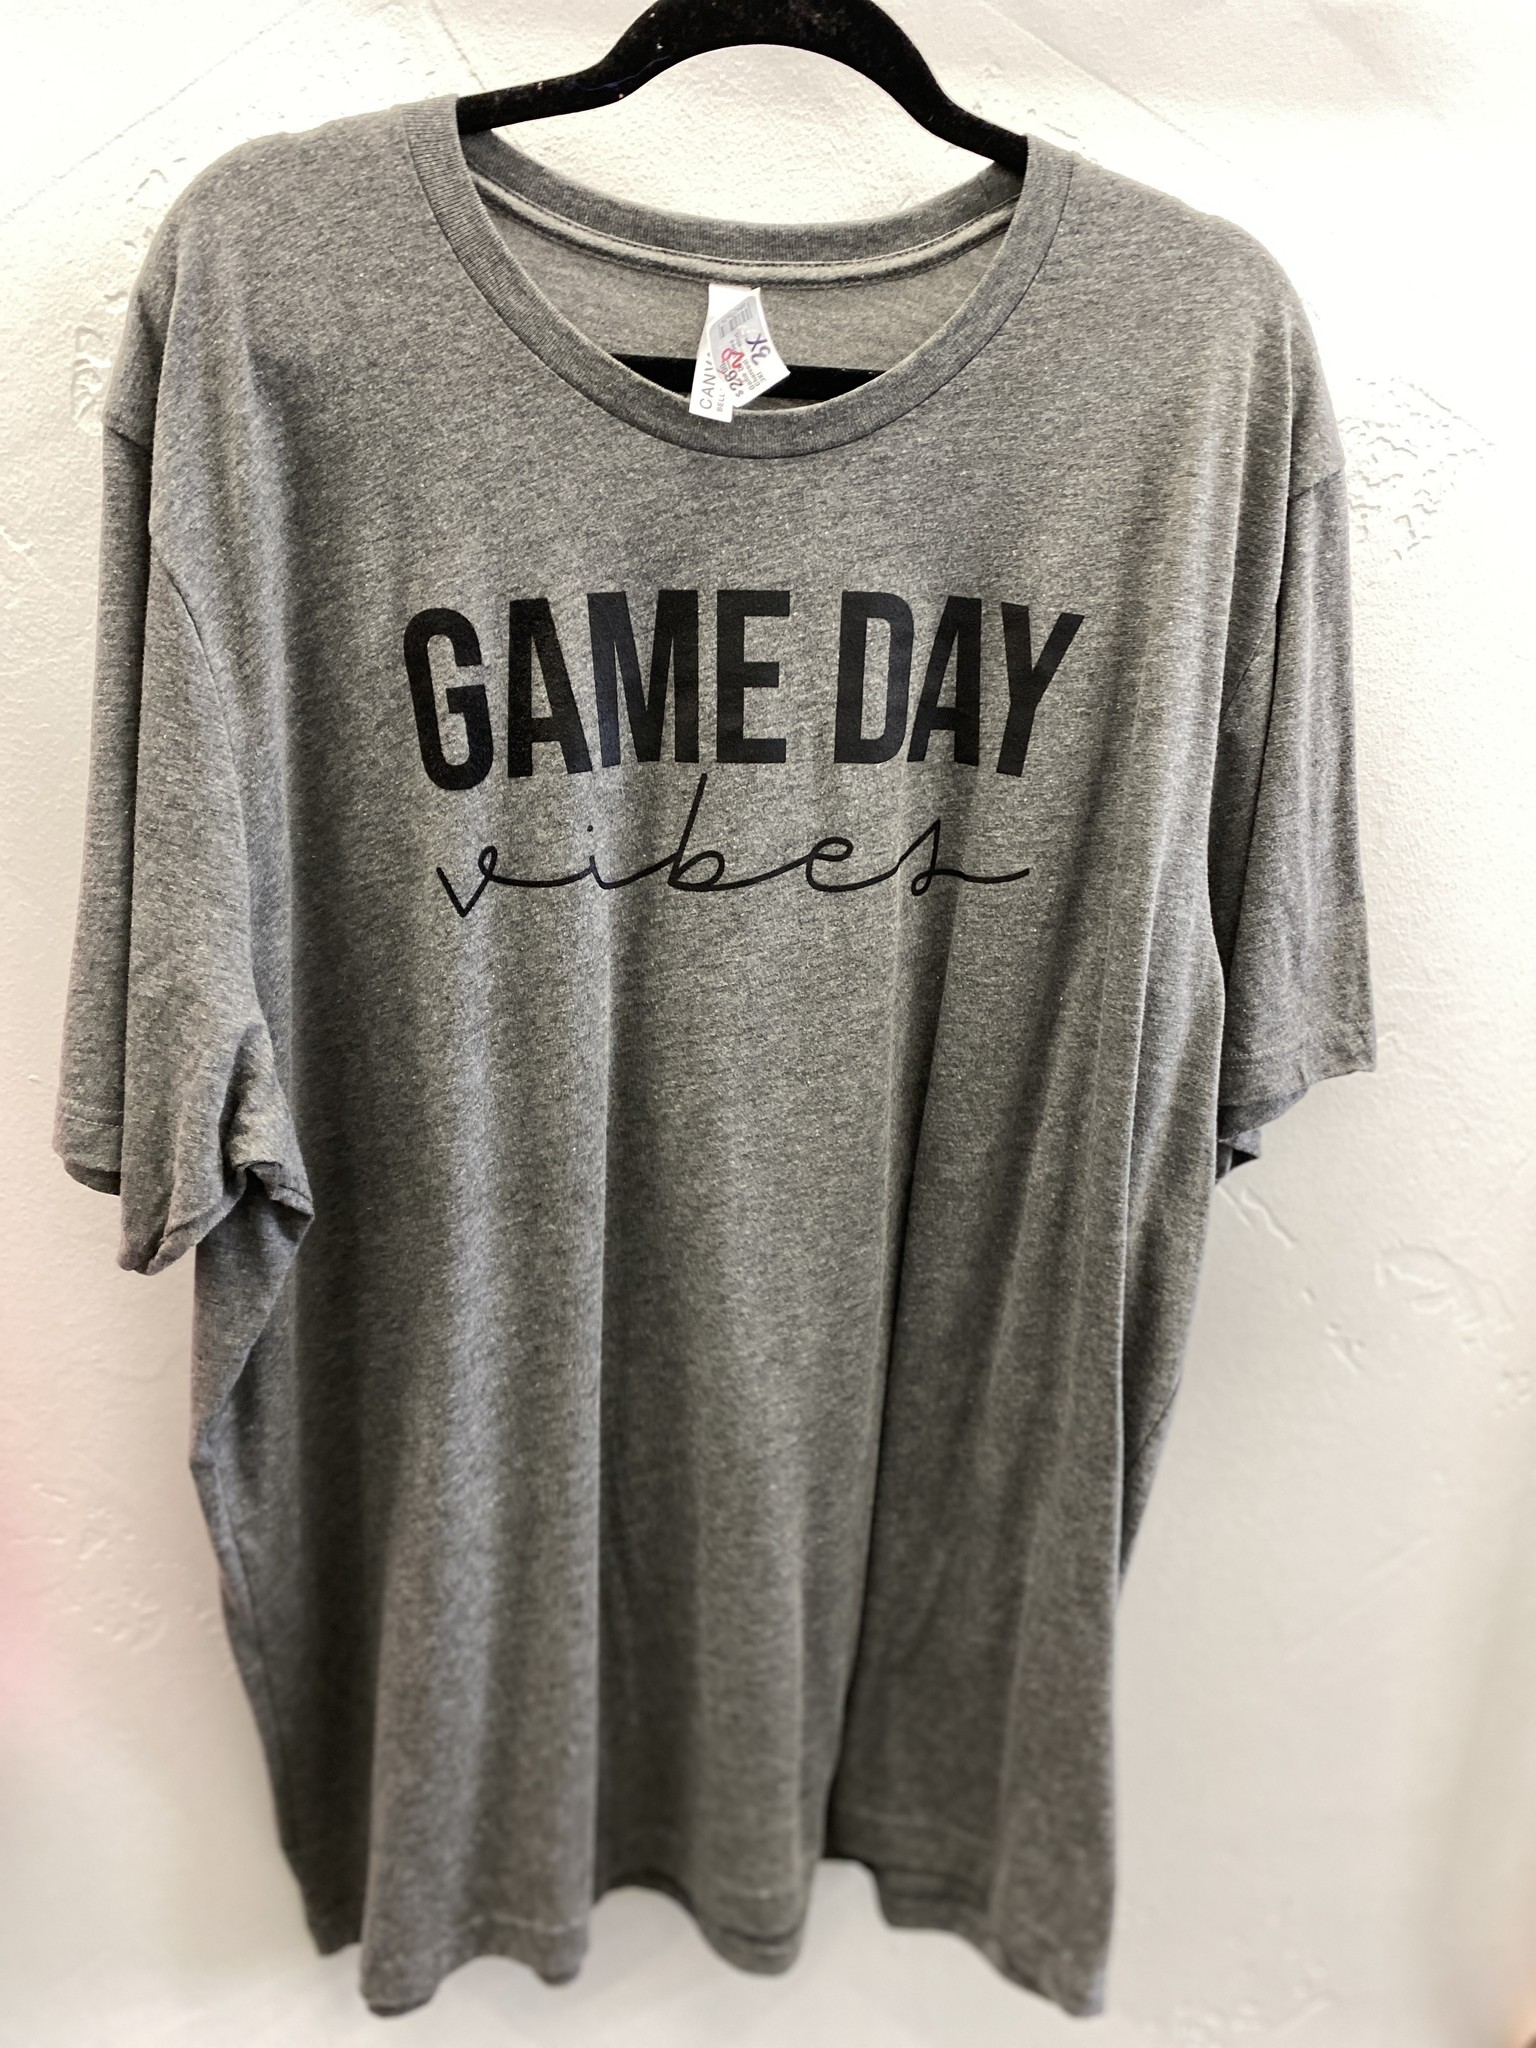 Game Day Vibes Charcoal T-shirt